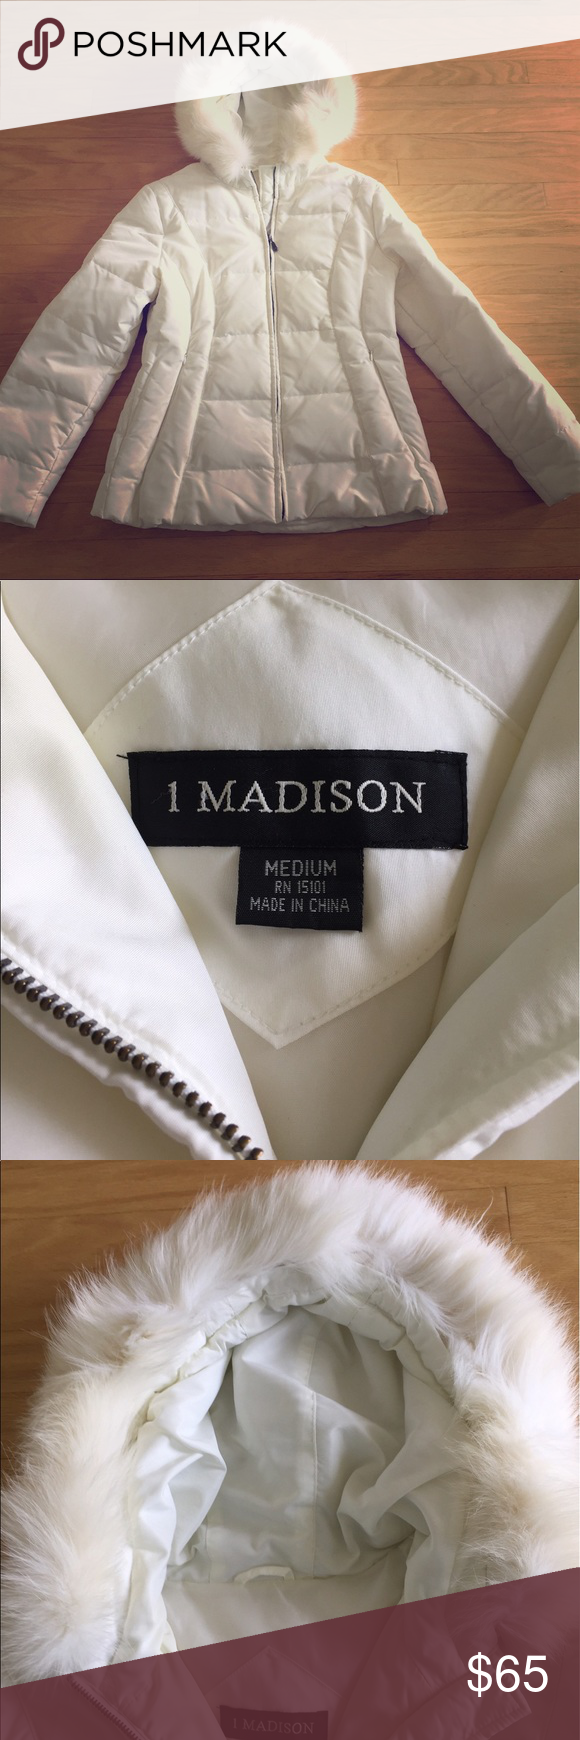 White down coat, with fur hood Looks brand new, completely white with very soft fur lining the hood. No stains, no marks, no holes. NWOT. Brand: Madison 1 bought from Nordstrom. Size: Medium. 1 Madison Jackets & Coats Puffers